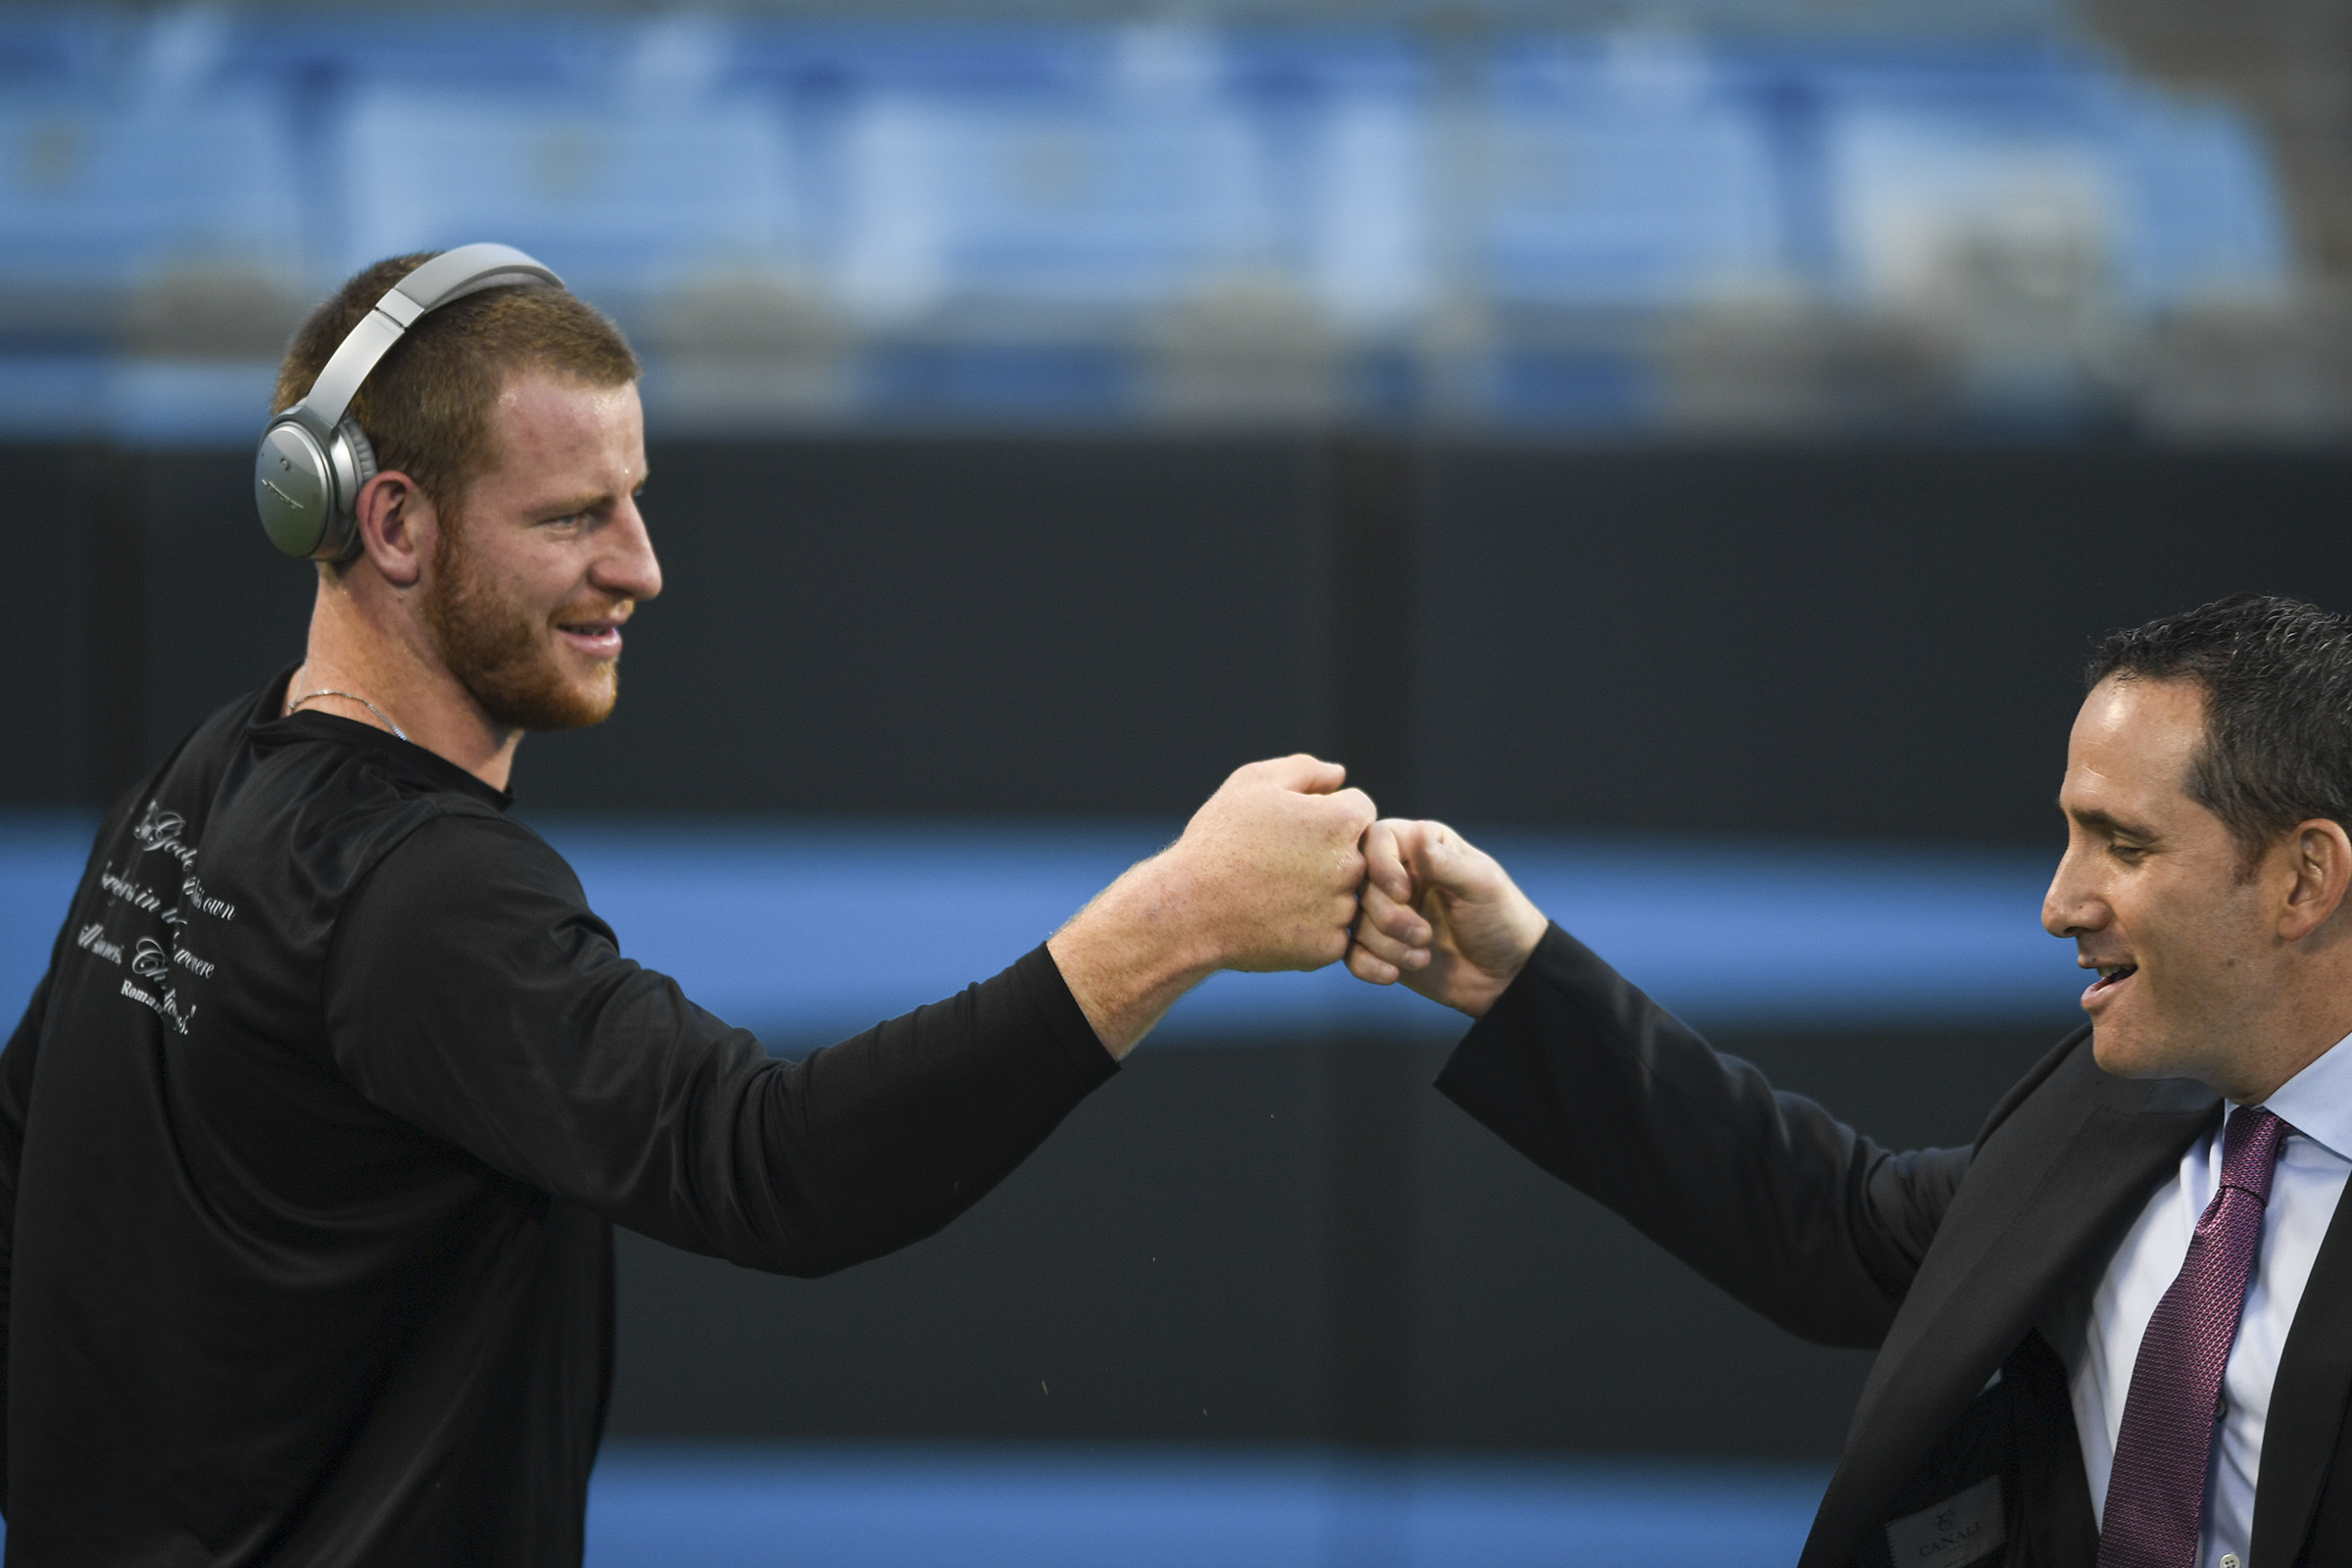 Eagles quarterback Carson Wentz fist bumps with Eagles executive vice president of football operations Howie Roseman prior to the game against the Carolina Panthers October 12, 2017 at Bank of America Stadium. CLEM MURRAY / Staff Photographer